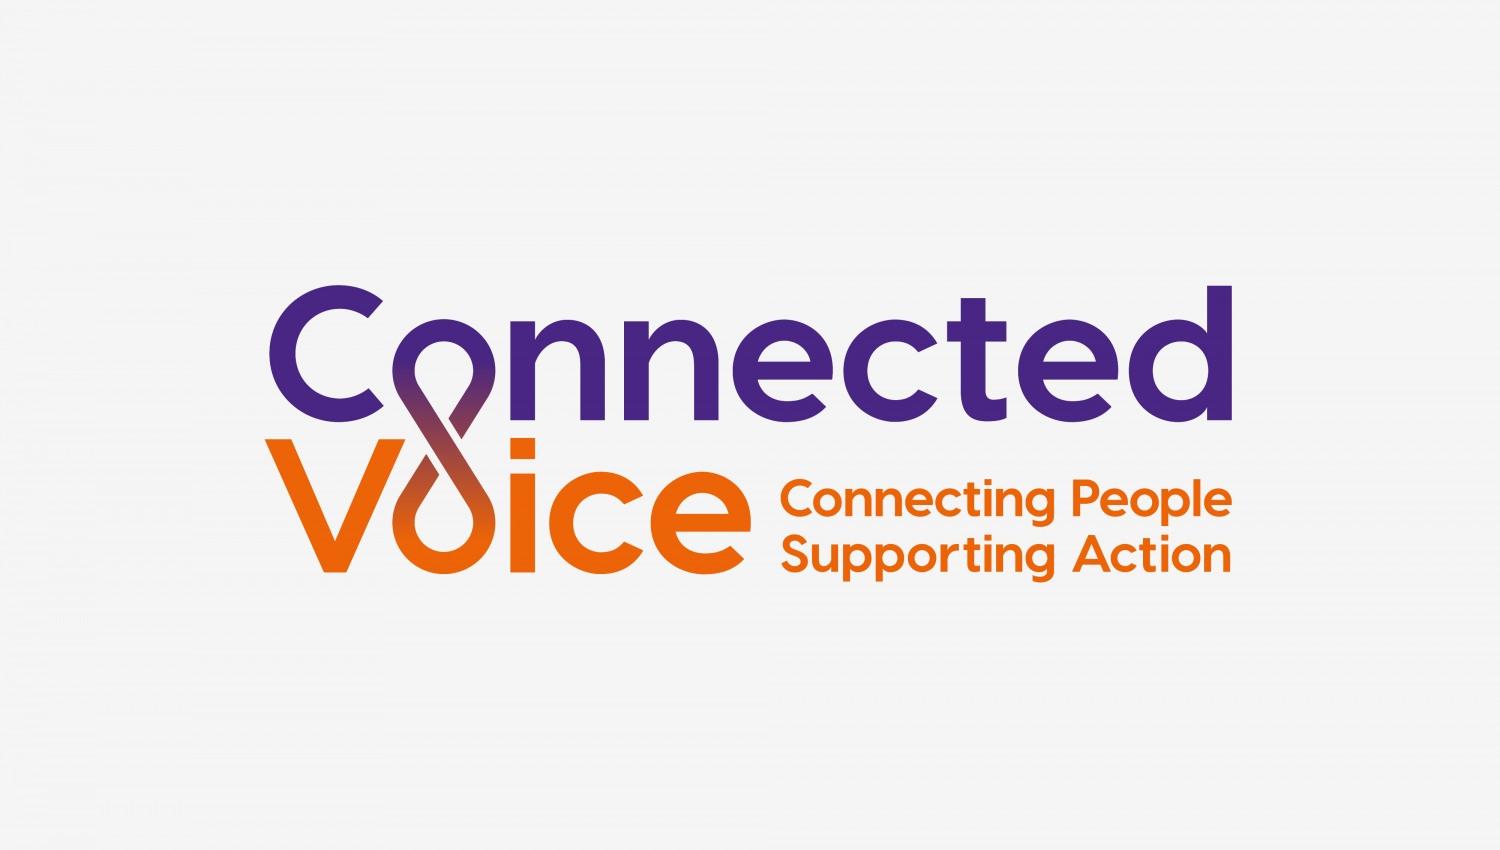 Connected Voice charity branding for regional cvs by Altogether creative.